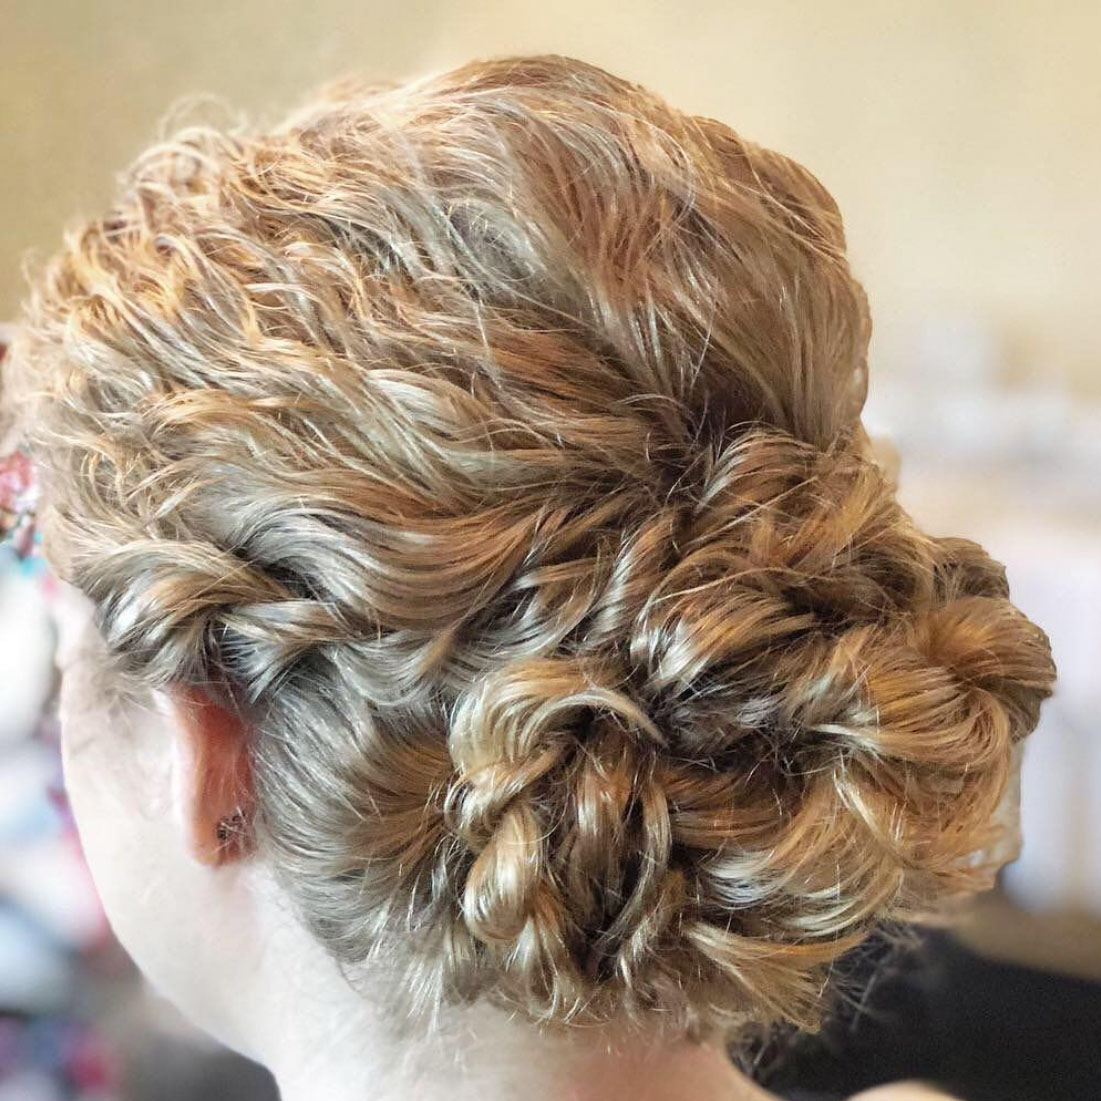 Stunning Wedding Hairstyles for Naturally Curly Hair | Southern Living